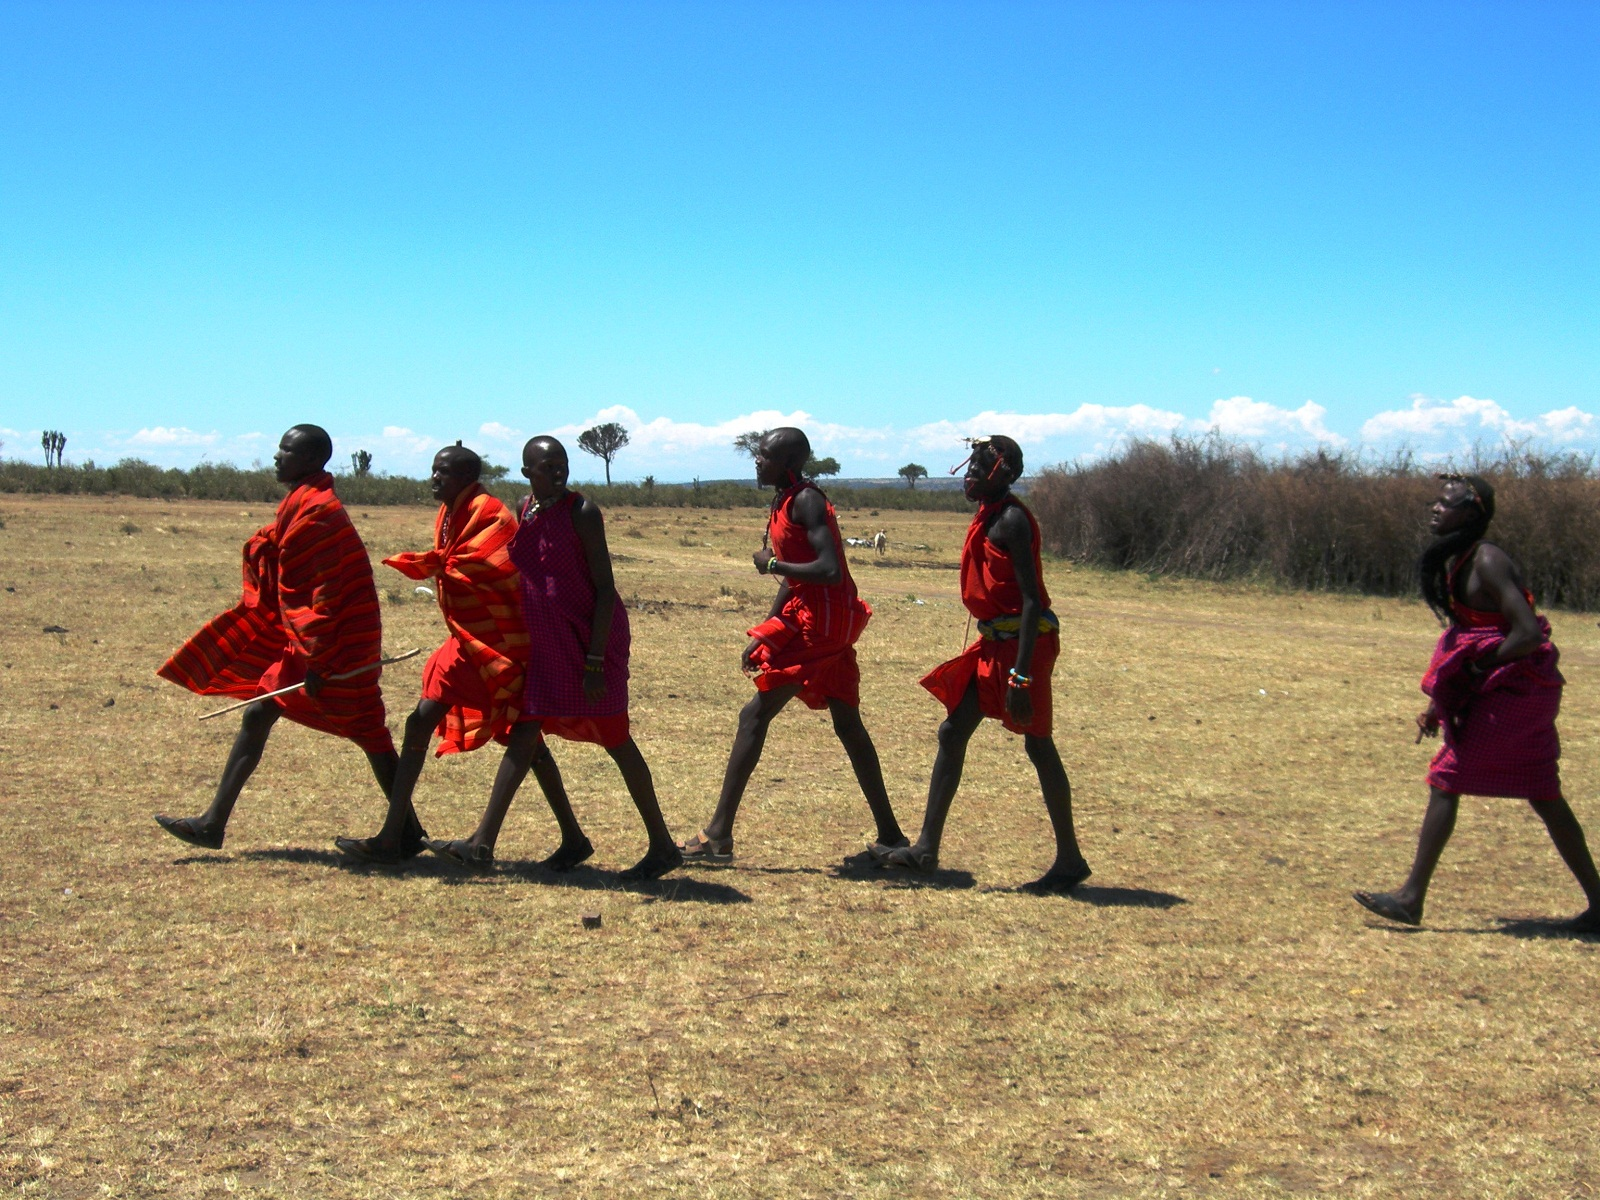 Kenya, Africa, Masai People